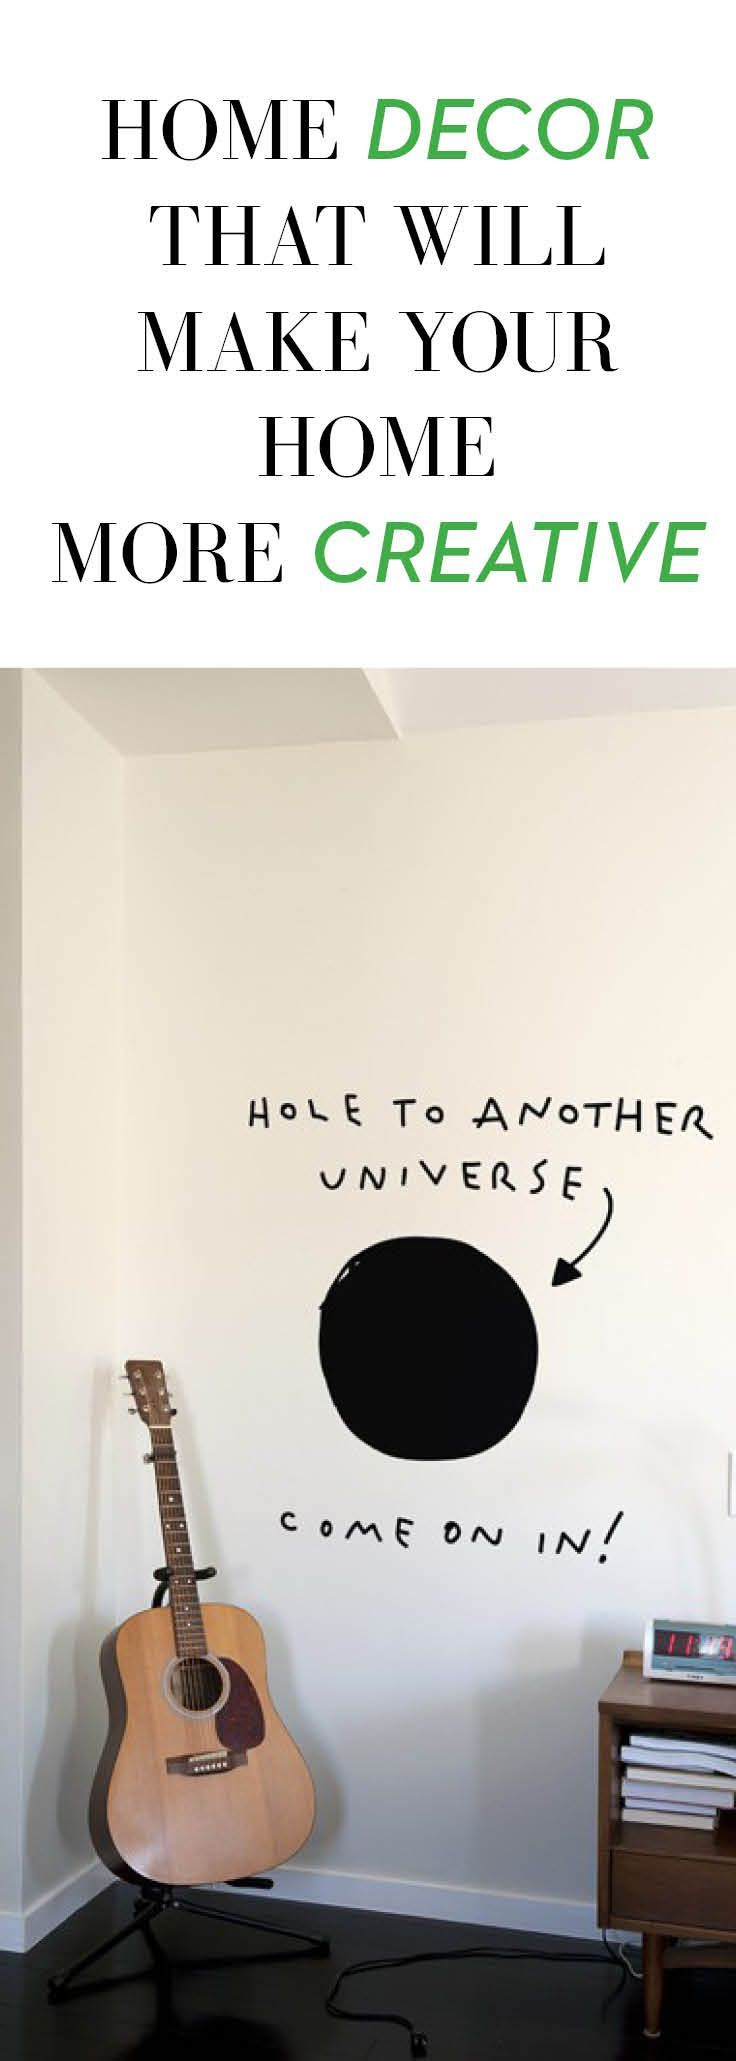 Black Hole home decor wall decal